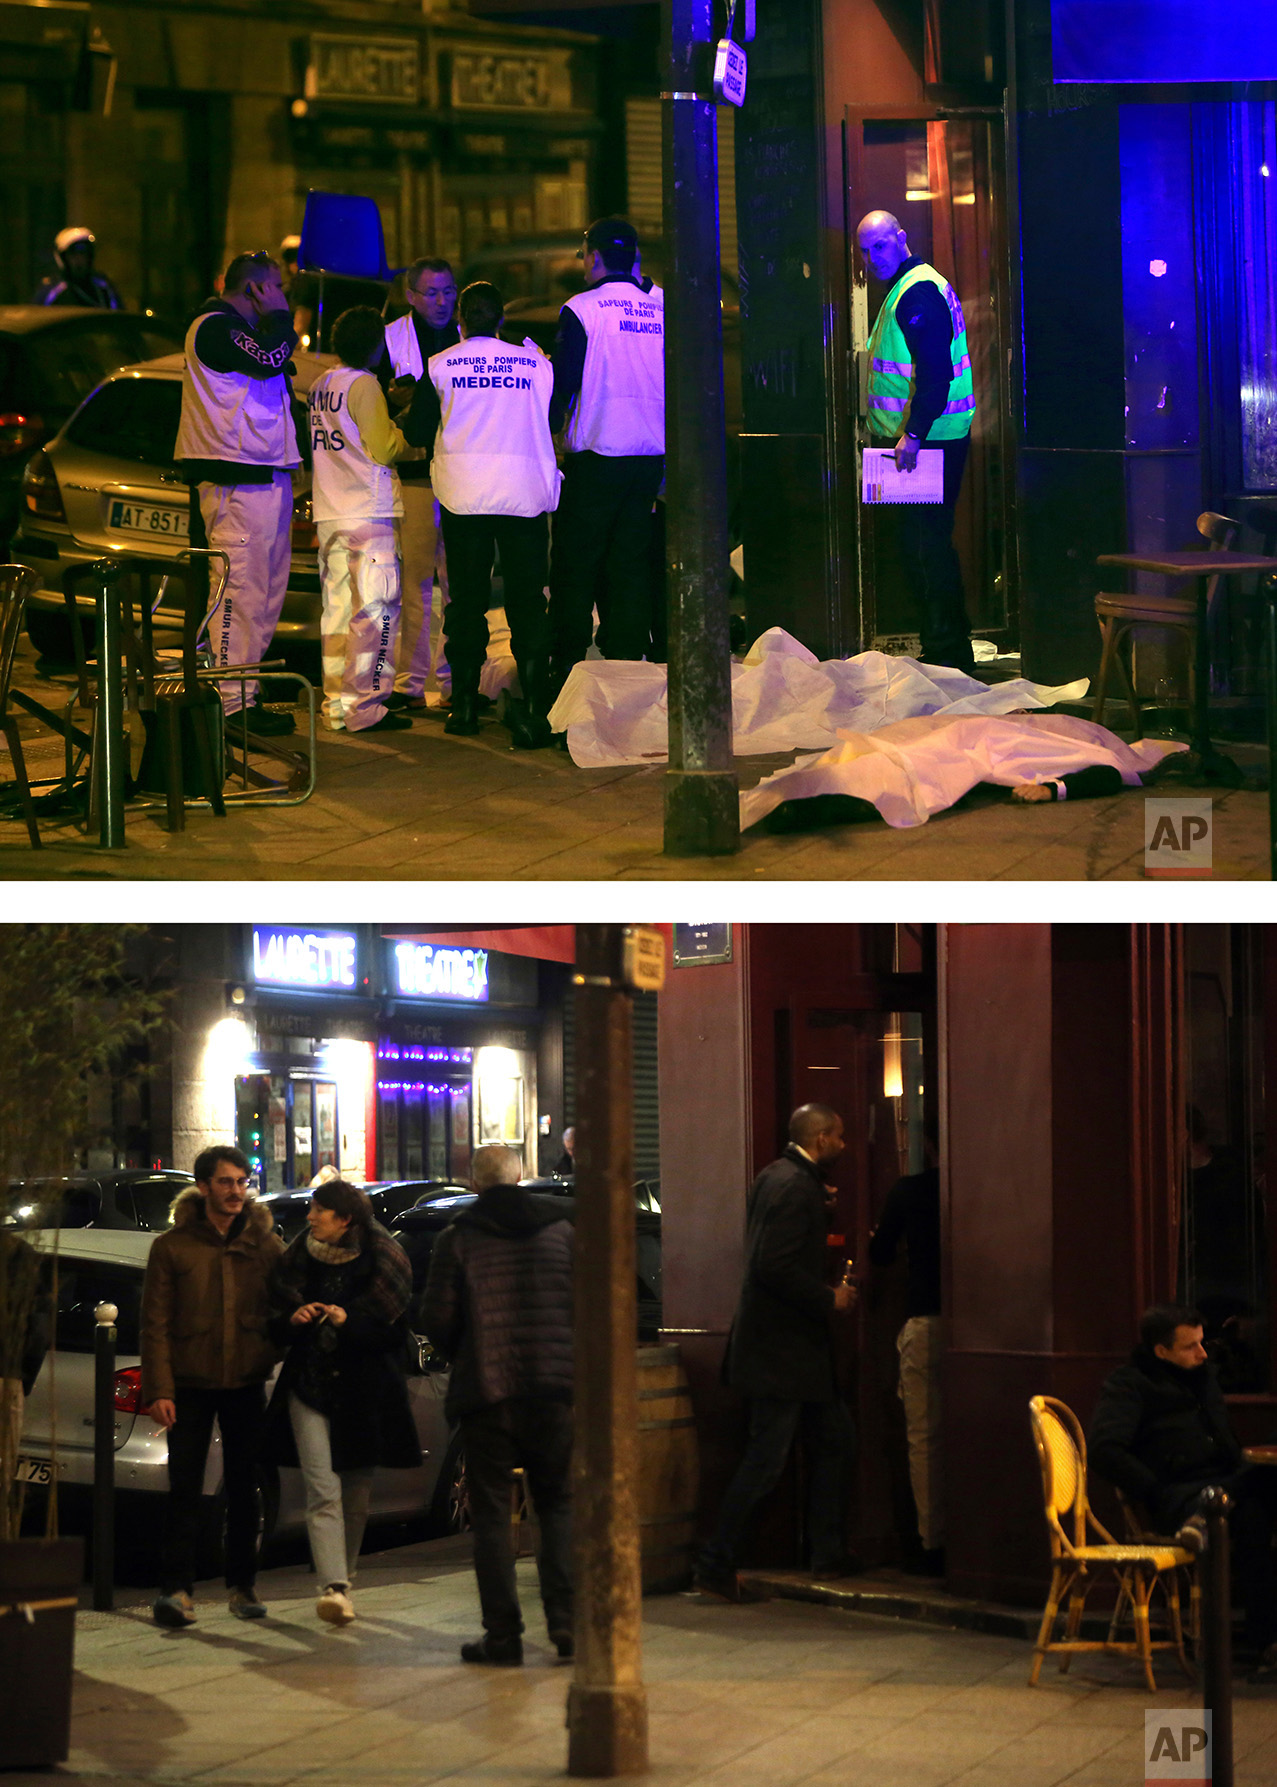 This combination of two photos shows a Friday, Nov. 13, 2015 photo, top, of medical staff standing near victims of violence in a Paris restaurant, and people walking along the street passing the restaurant, bottom, on Tuesday, Nov. 8, 2016. (AP Photo/Thibault Camus, Thibault Camus)